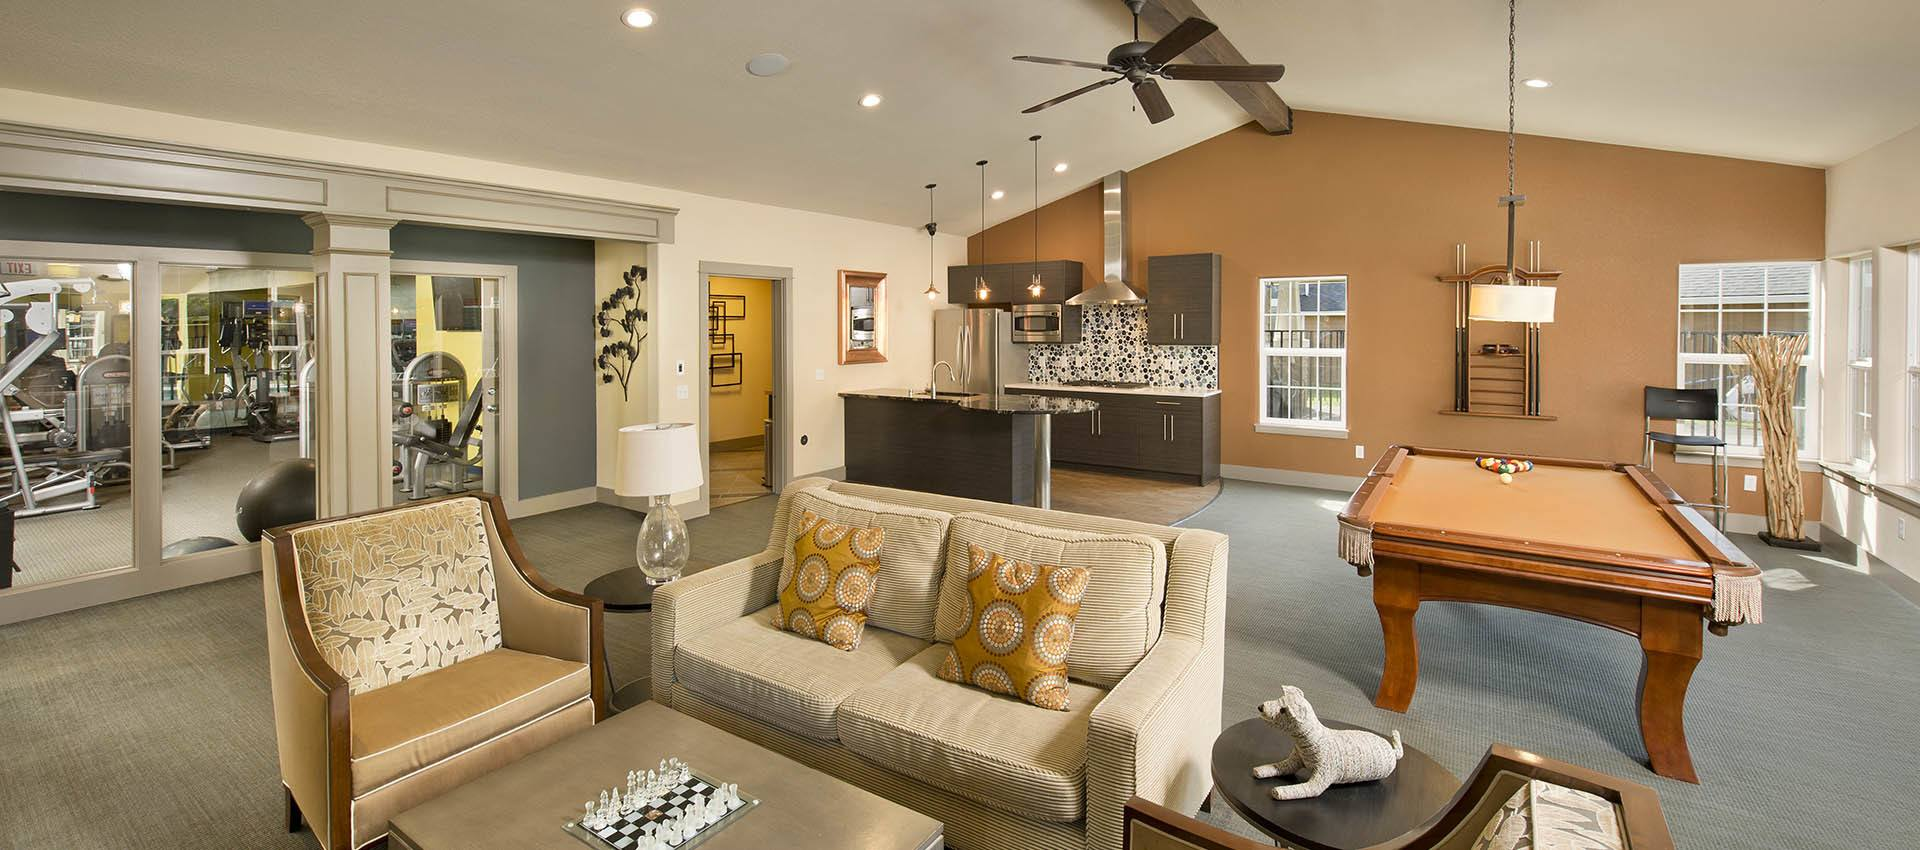 Residents lounge at Slate Ridge at Fisher's Landing Apartment Homes in Vancouver, WA